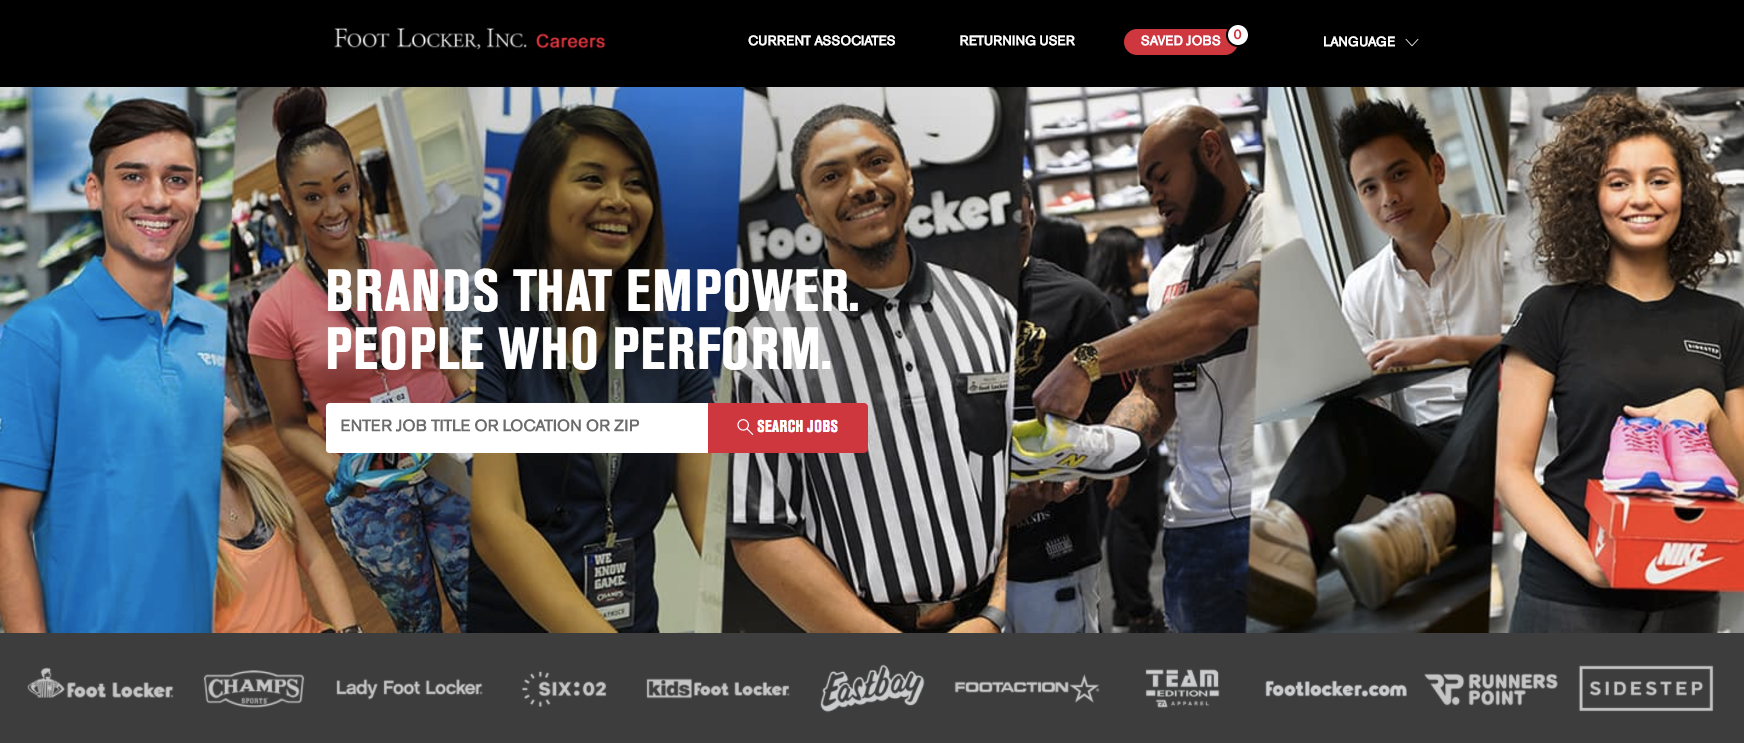 Foot Locker's Career Site Powered by Phenom People